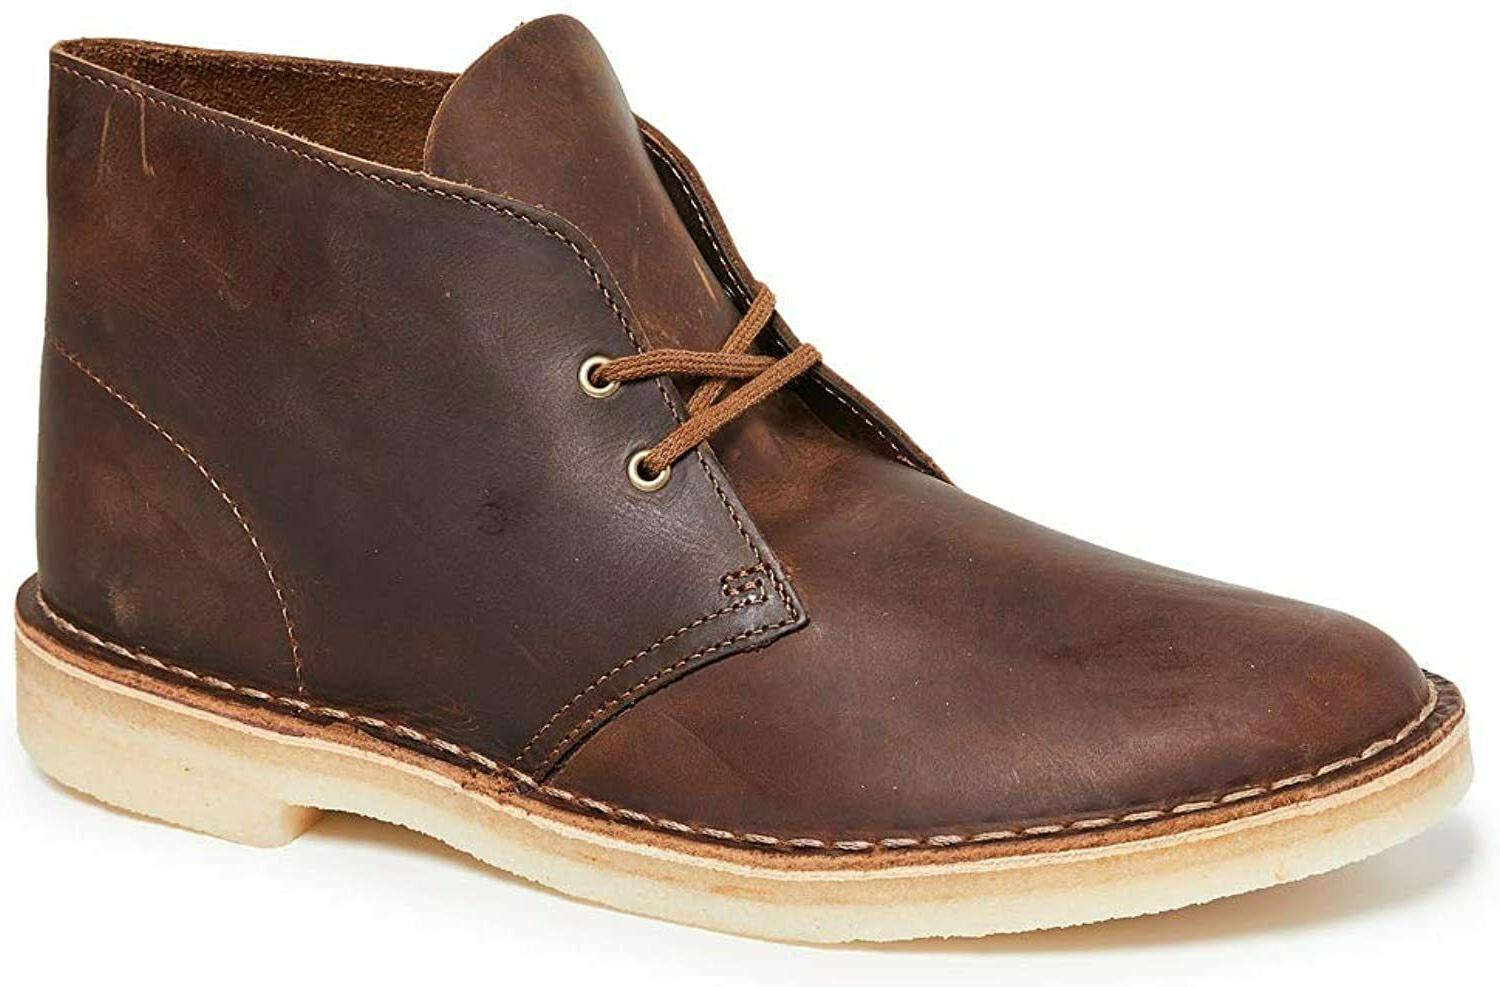 mens desert boots beeswax leather 261 06562